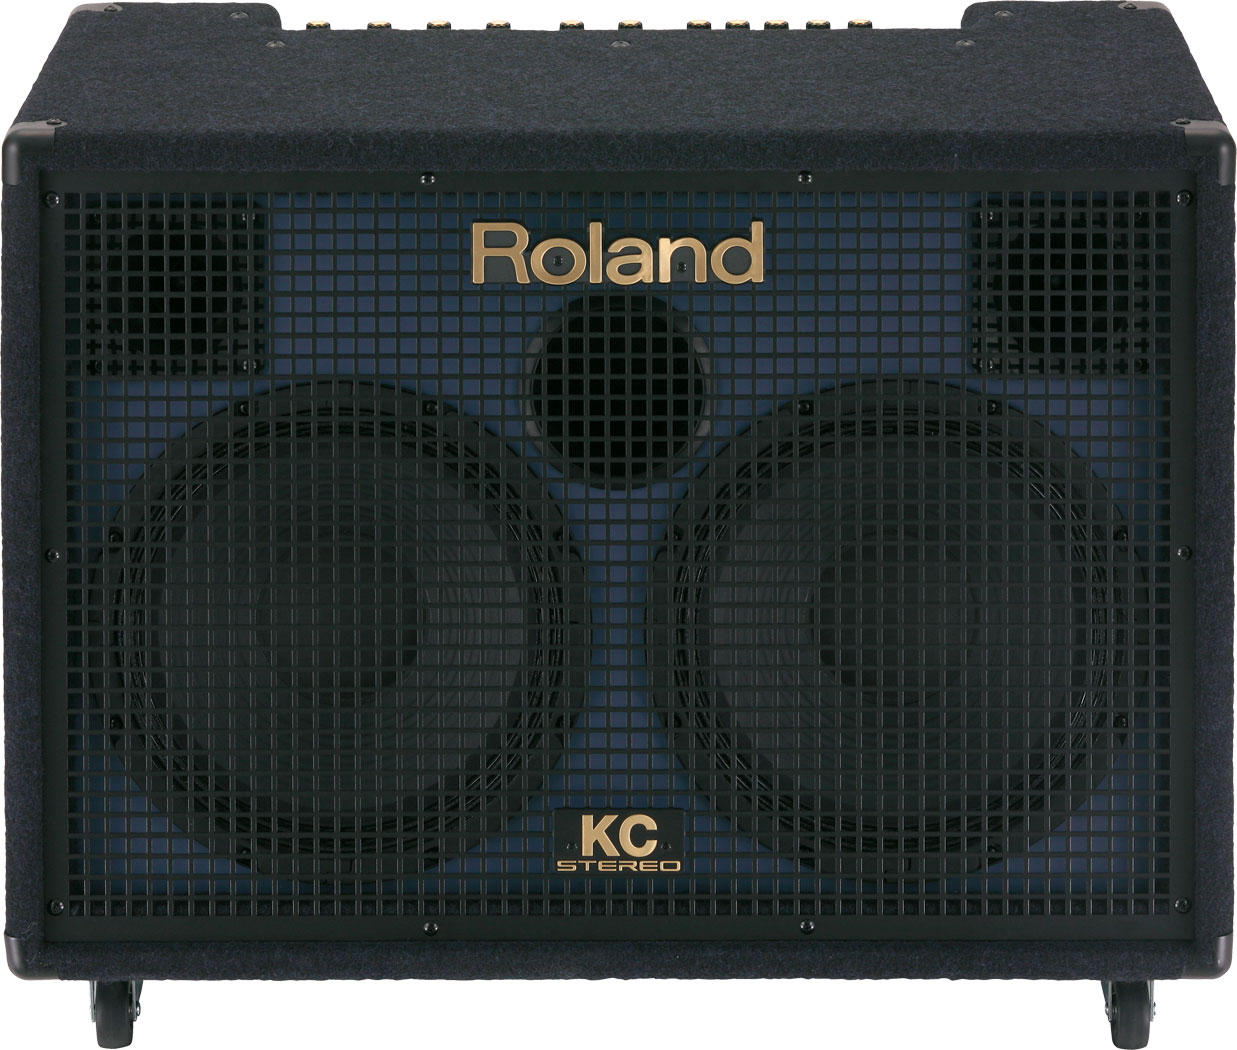 roland india kc 880 stereo mixing keyboard amplifier. Black Bedroom Furniture Sets. Home Design Ideas